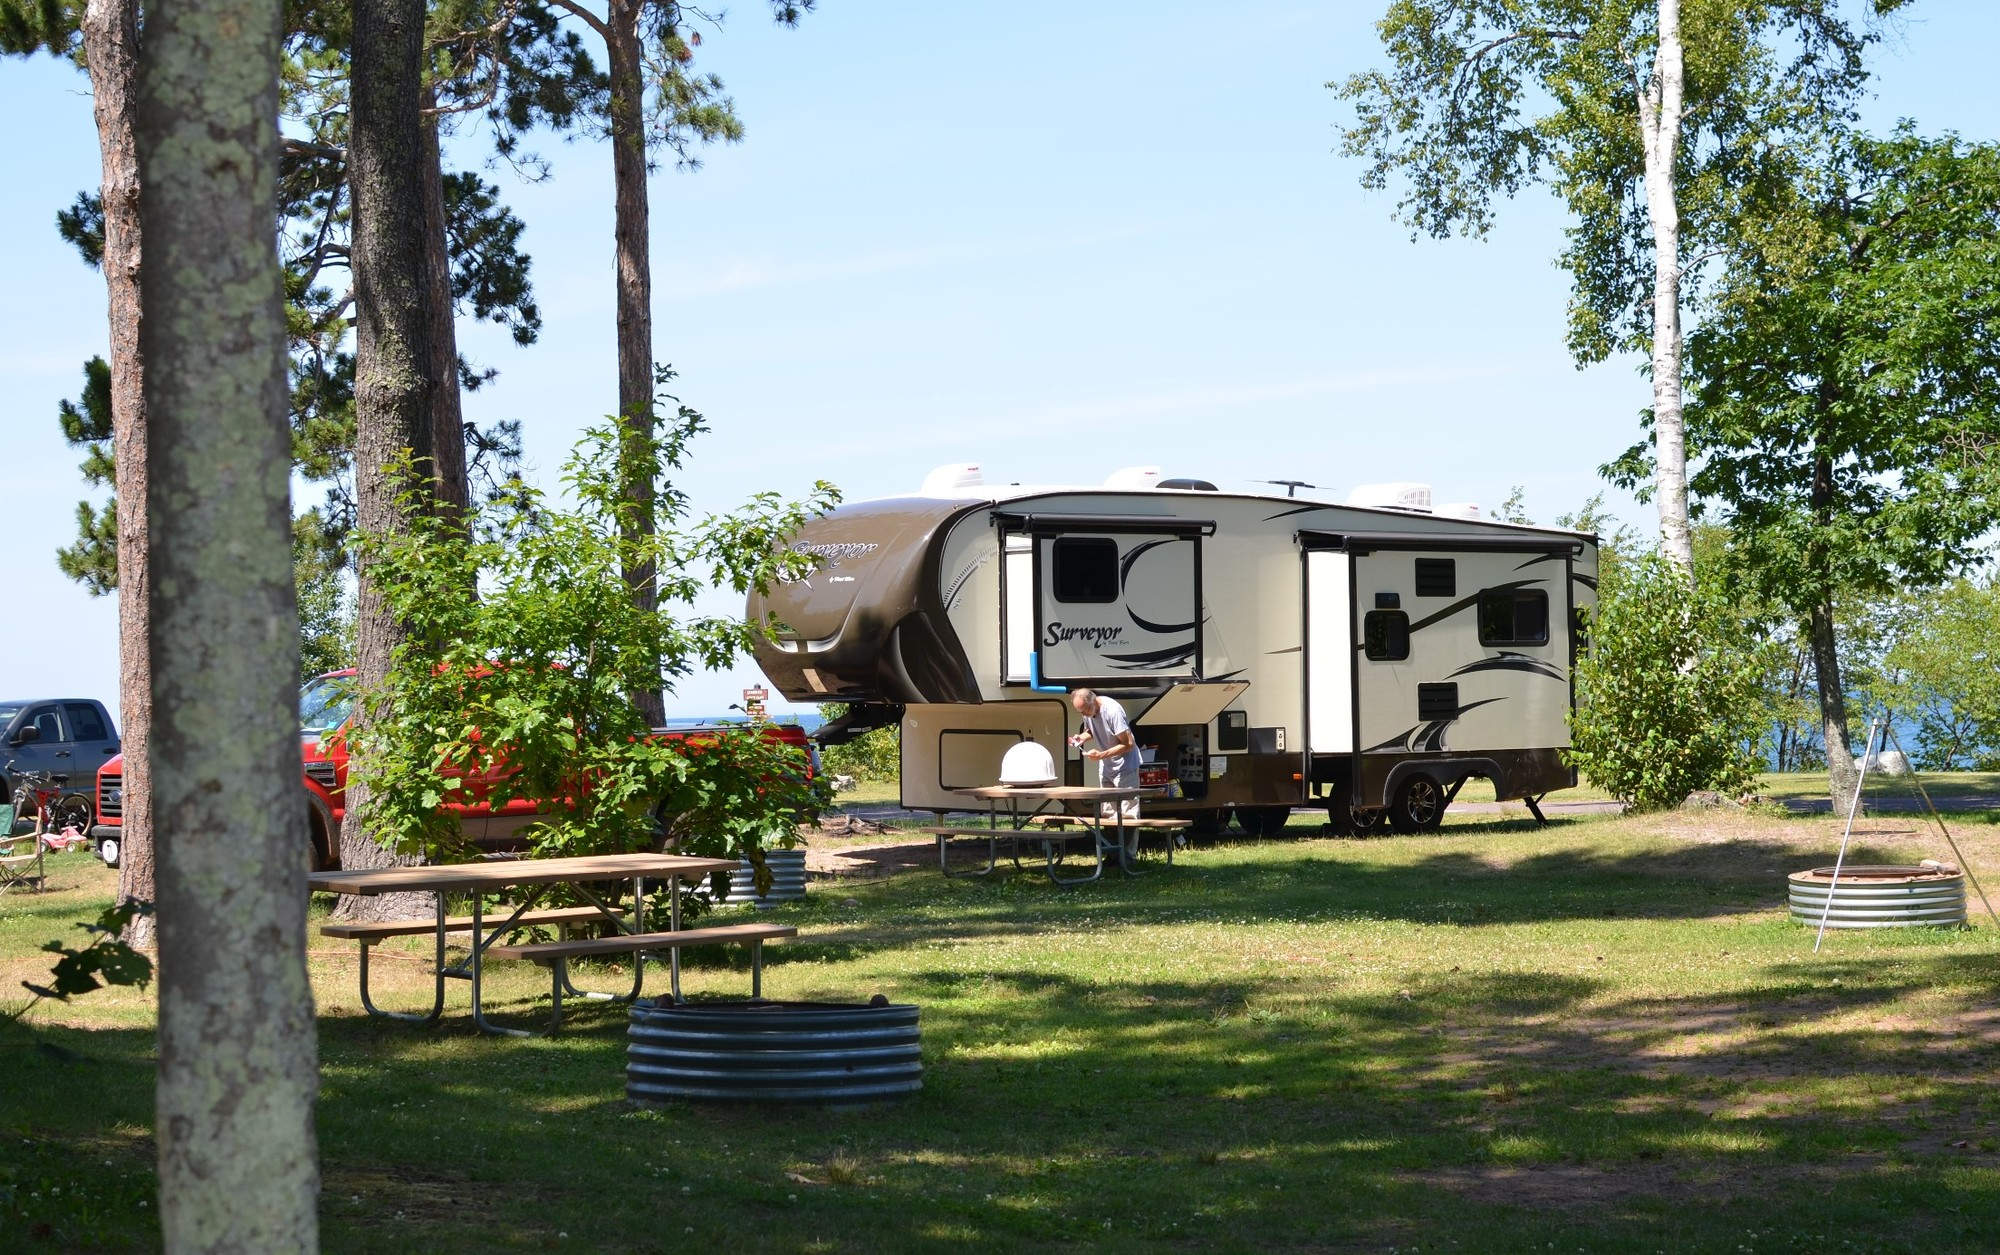 Camping Reservations To Resume For McLain State Park